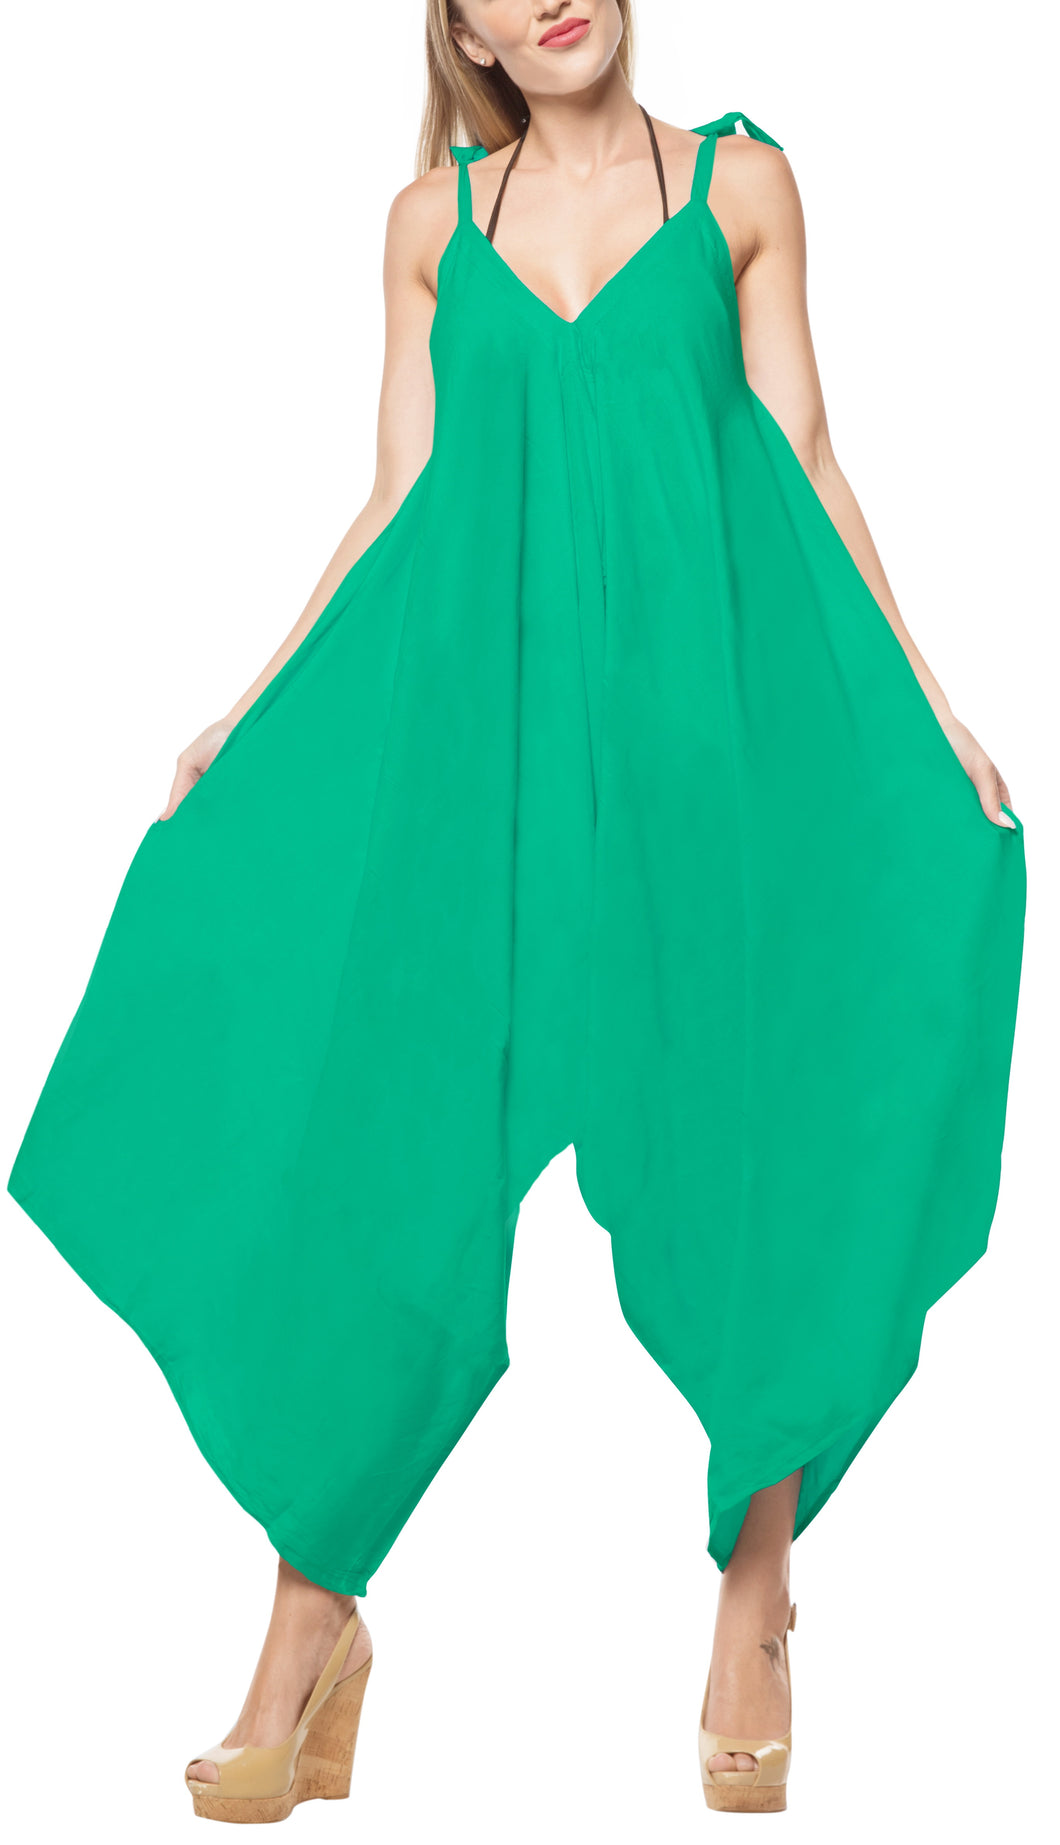 la-leela-beach-dress-solid-casual-swimwear-stretchy-osfm-14-16-sea-green_3429